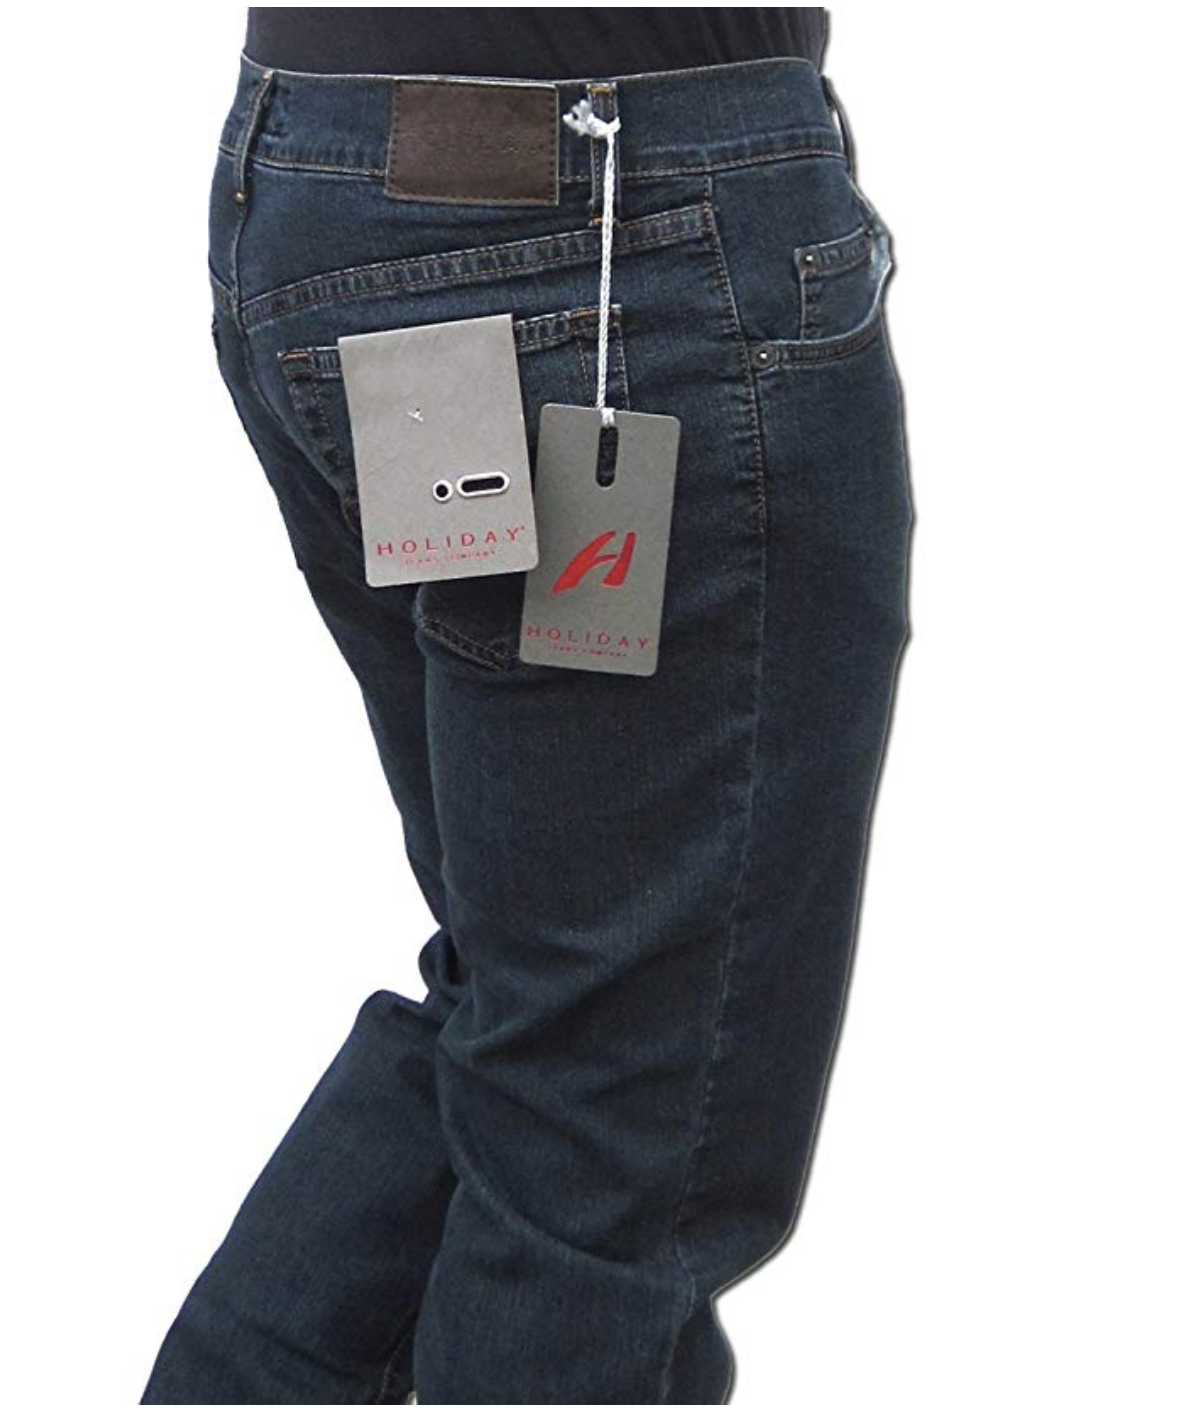 Alexander holiday jeans